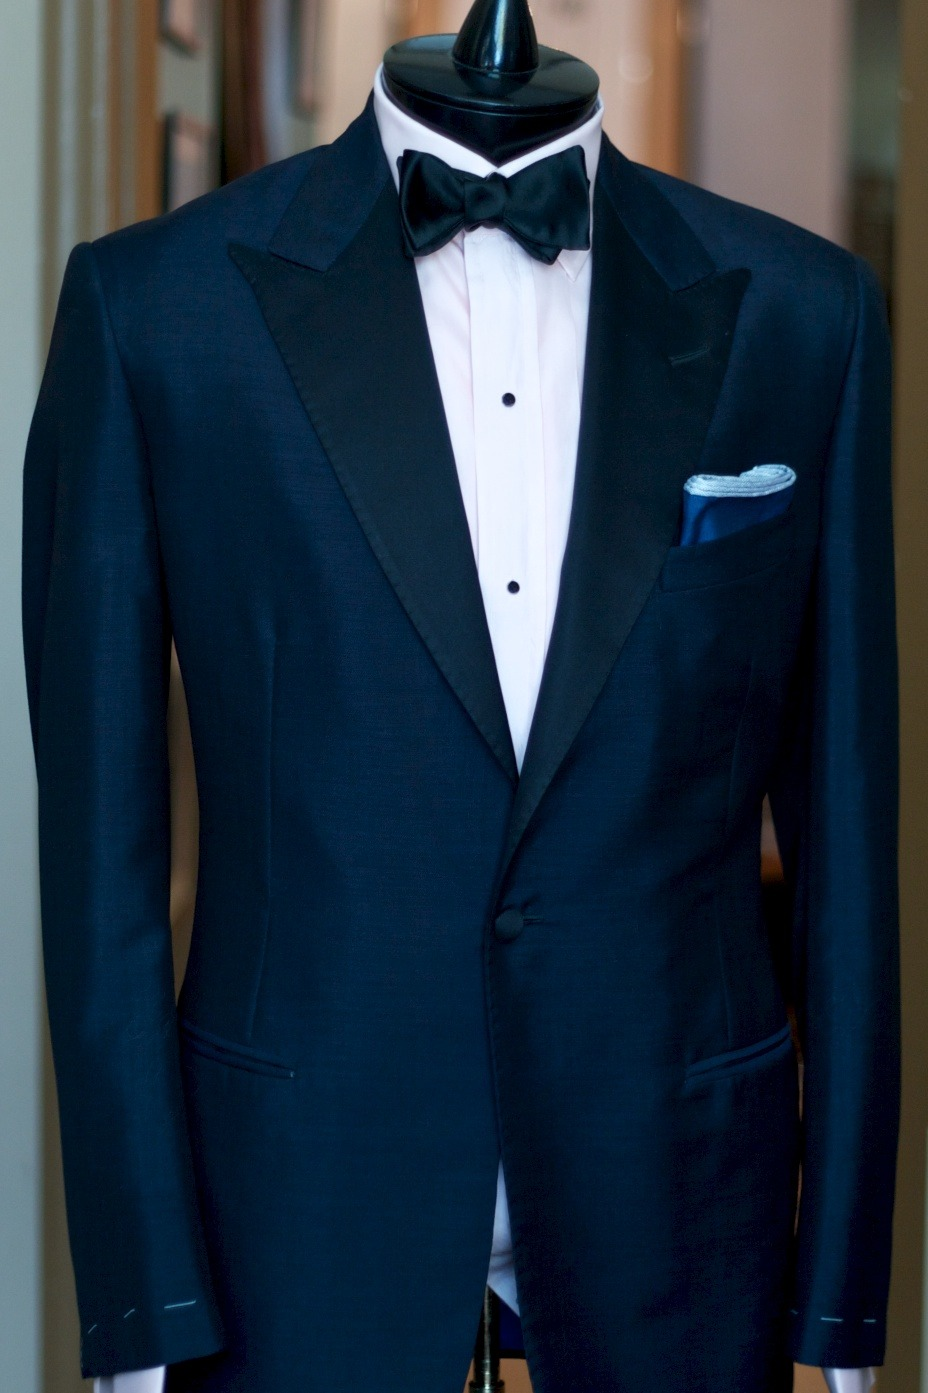 alanflusser:  Our navy mohair tuxedo: an elegant option for your formal events on warm summer nights.